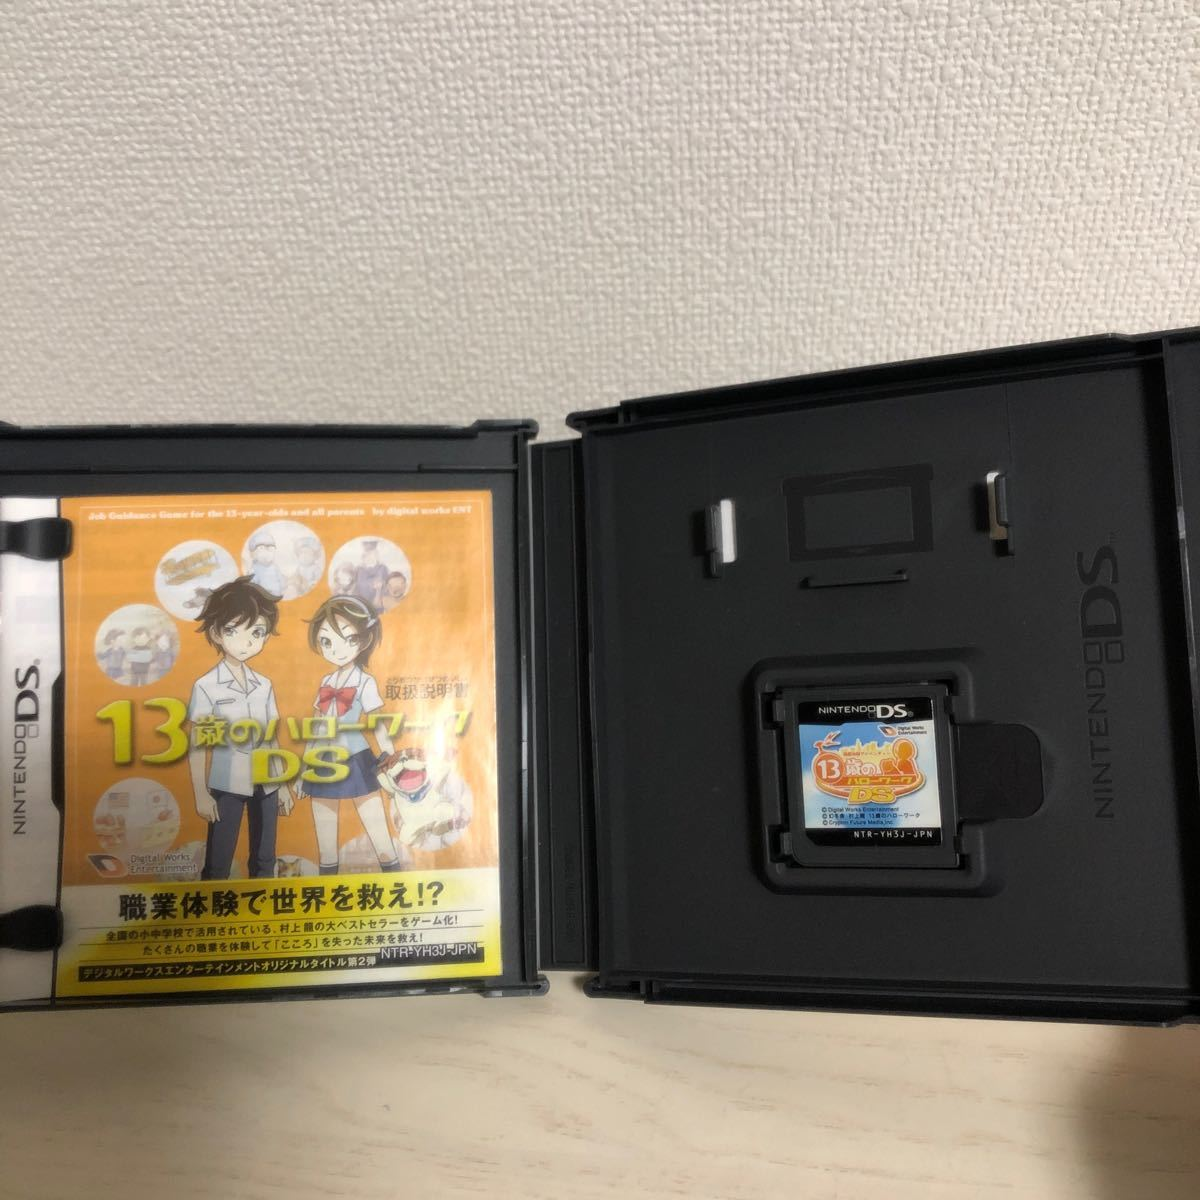 【DS】 13歳のハローワーク DS